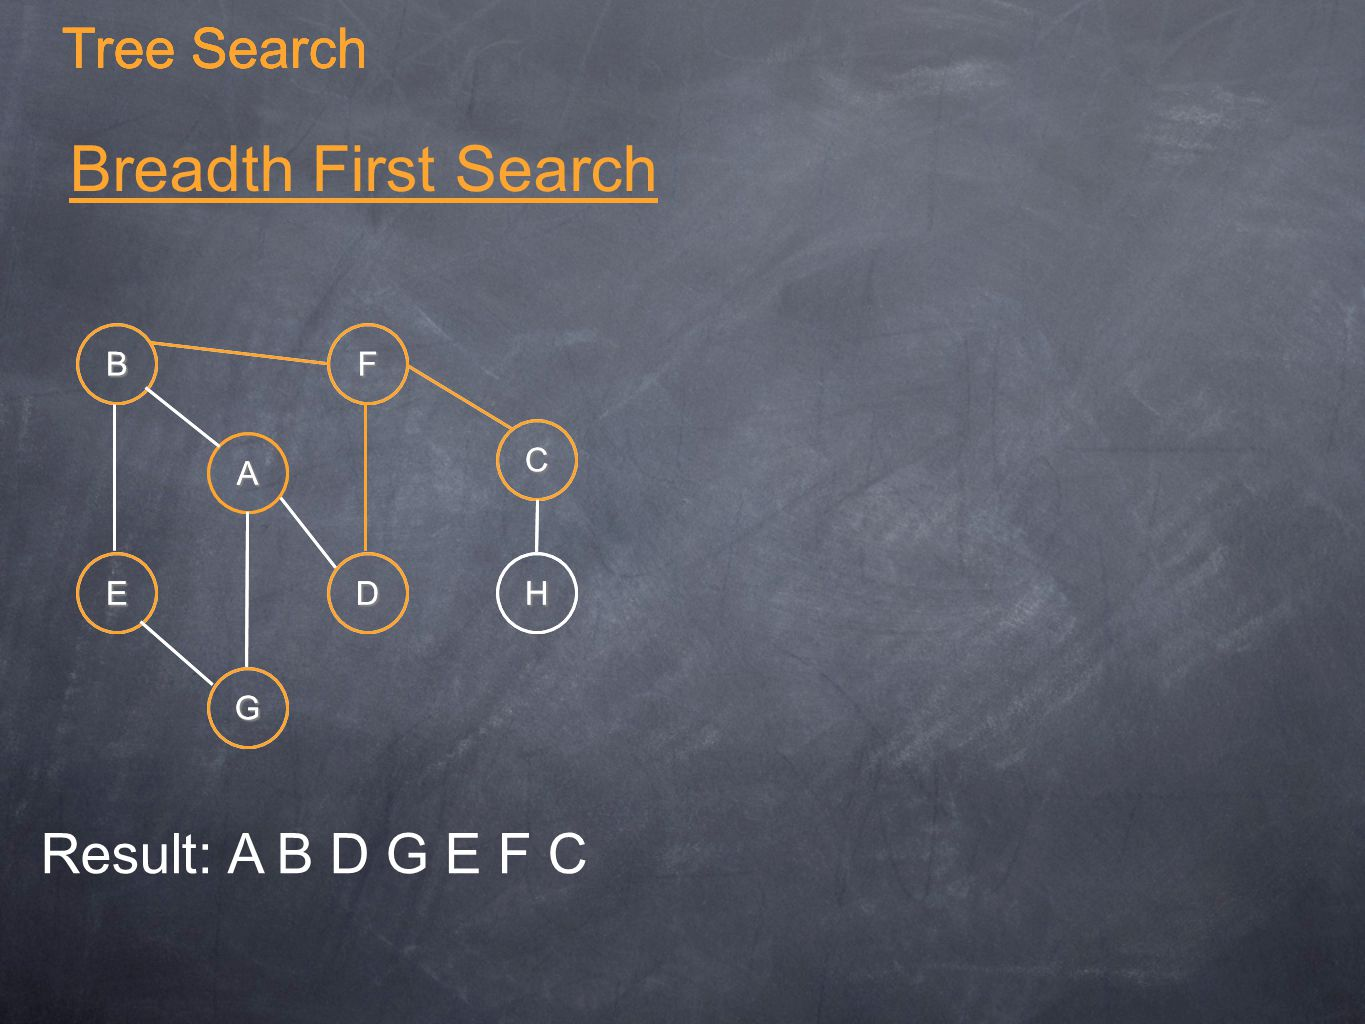 Tree Search Breadth First Search A B C G E F DH Tree Search A B C G E F DH Result: A B D G E F C